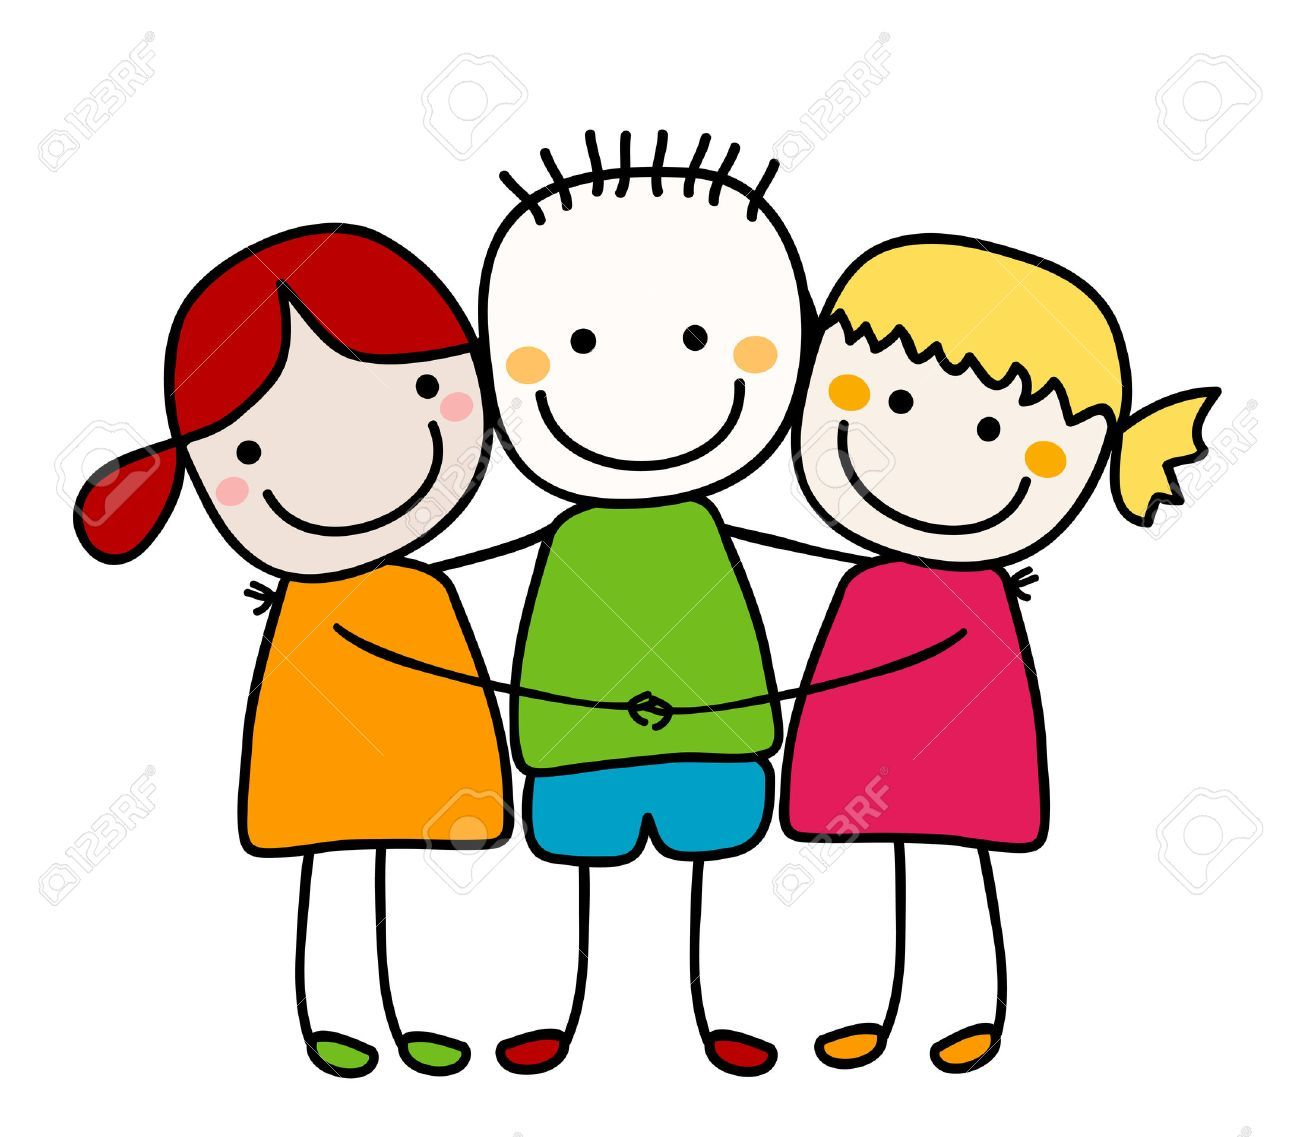 Family Relations Are The Purest Form Of Friendship Flavorsofworld Com Stick Drawings Stick Figure Drawing Art Drawings For Kids